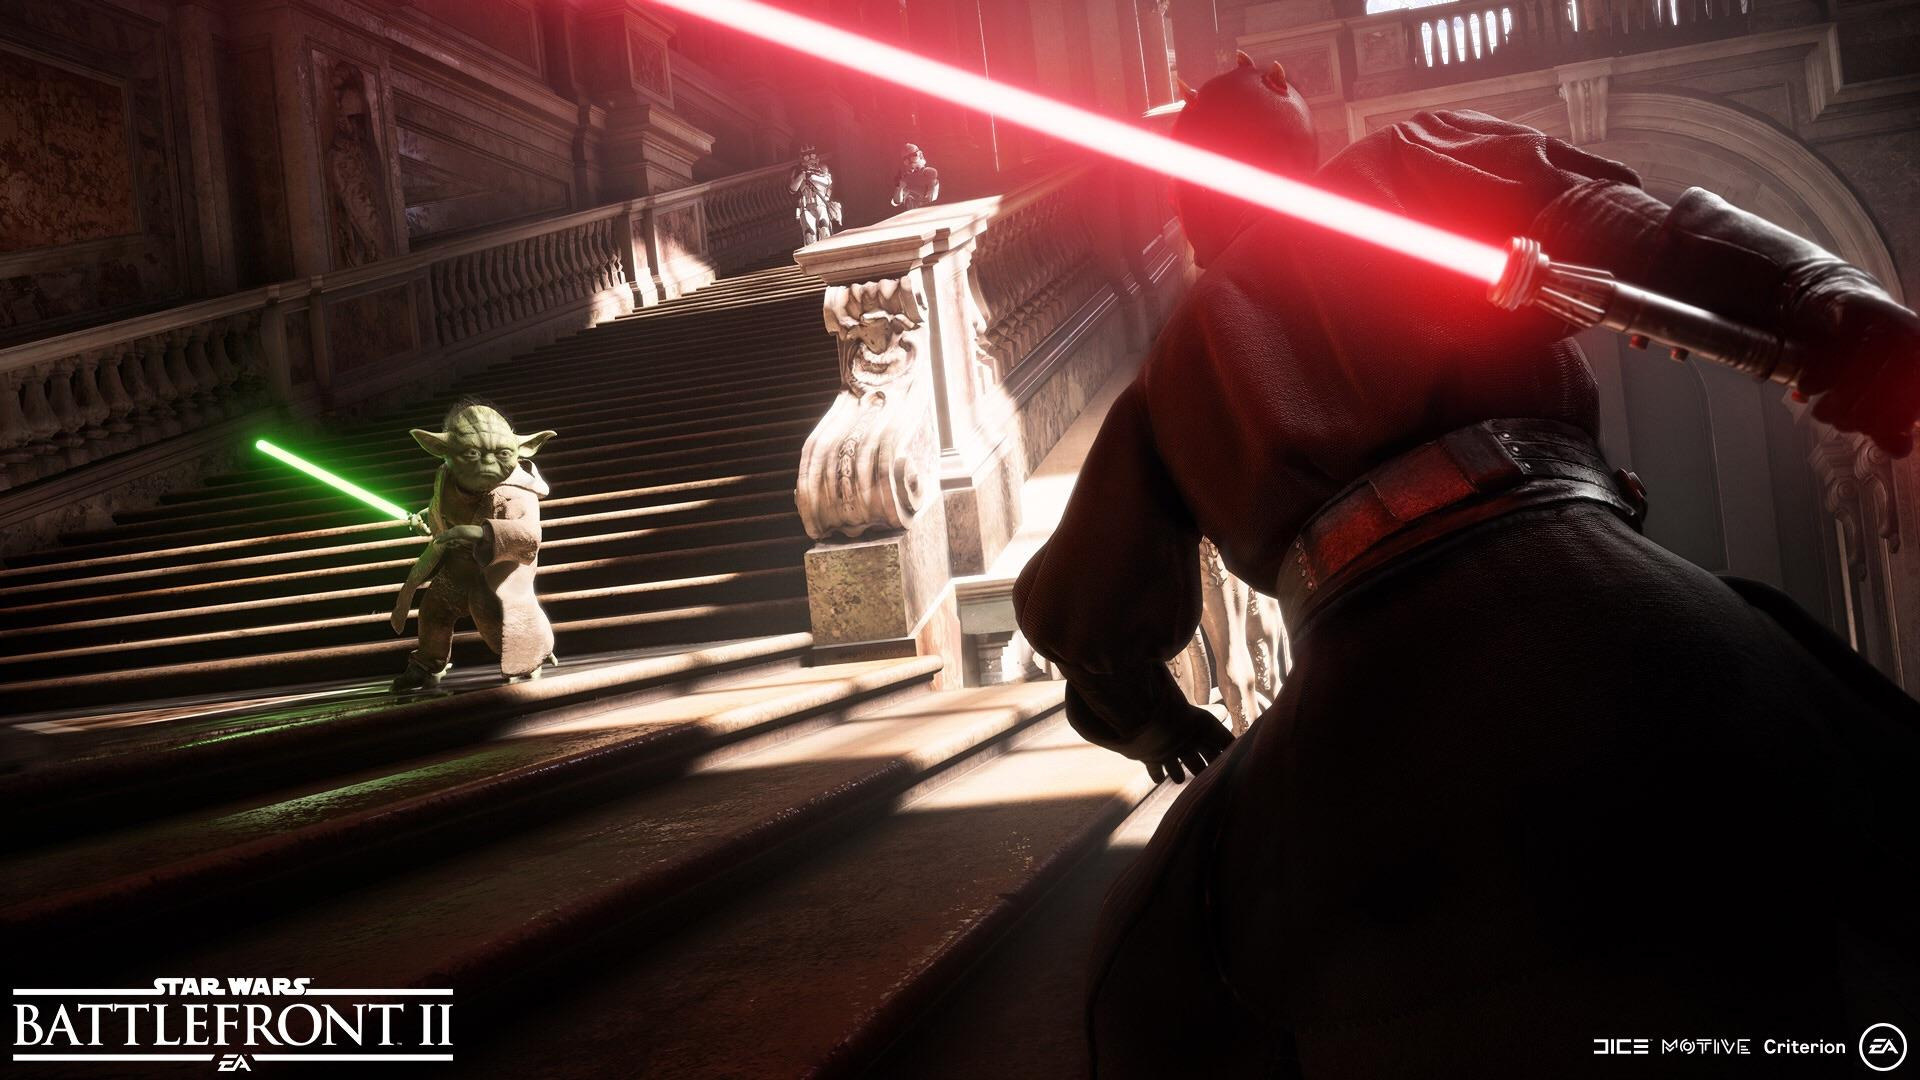 Star Wars Battlefront II will hold its multiplayer beta in the fall screenshot